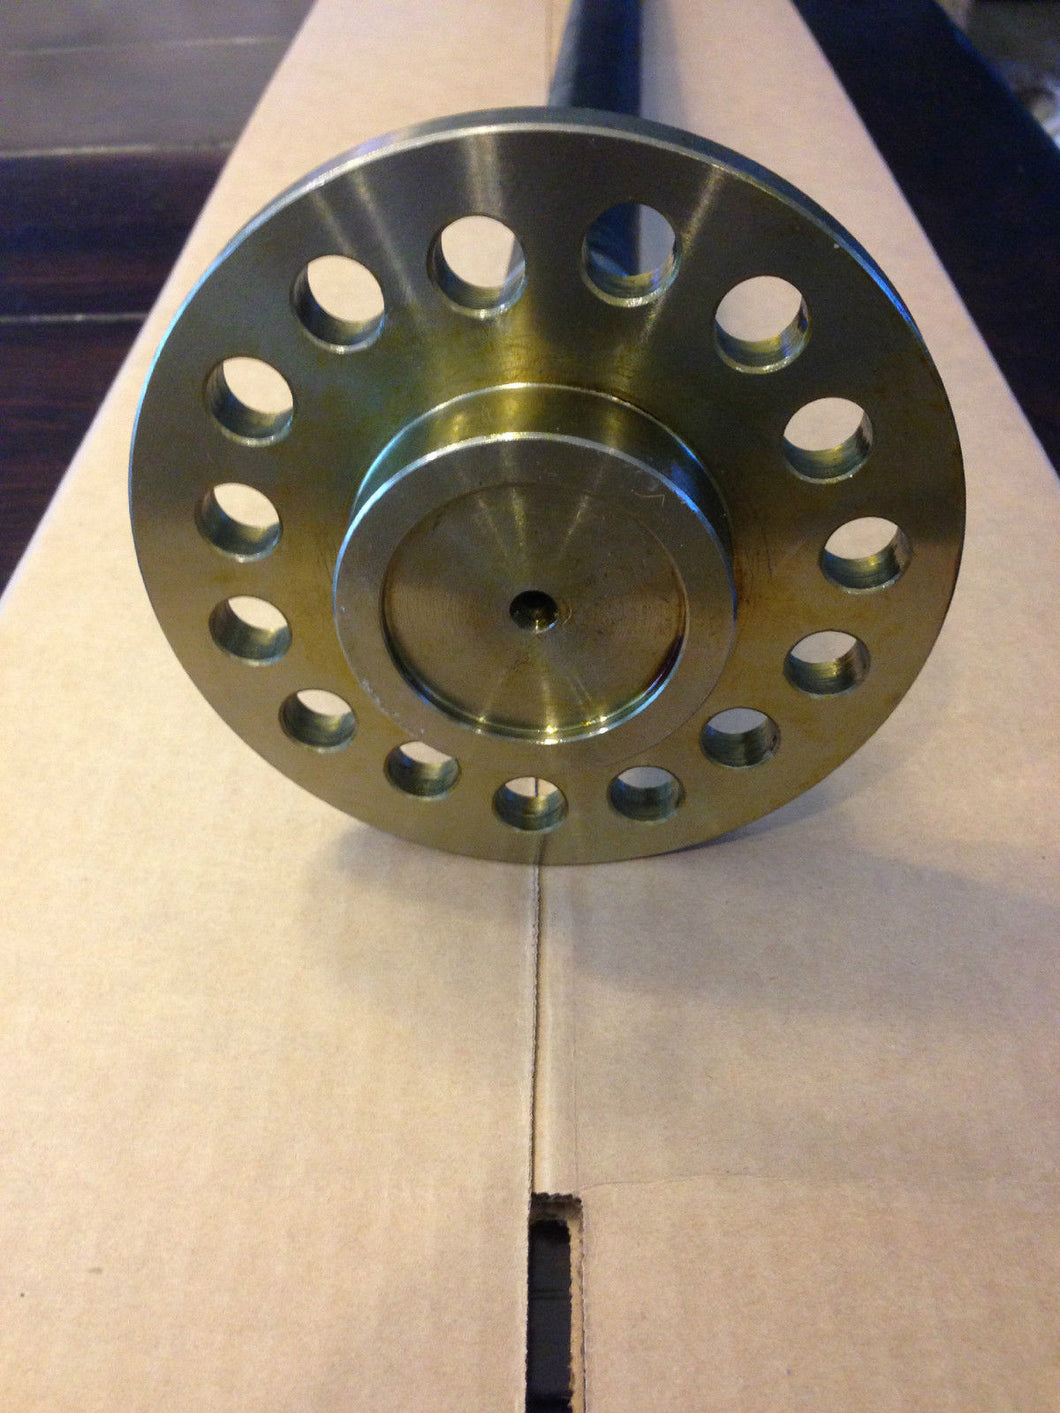 Ford 9 inch Axles, 31 Spline, Muli lug! / 9 tums bakaxel